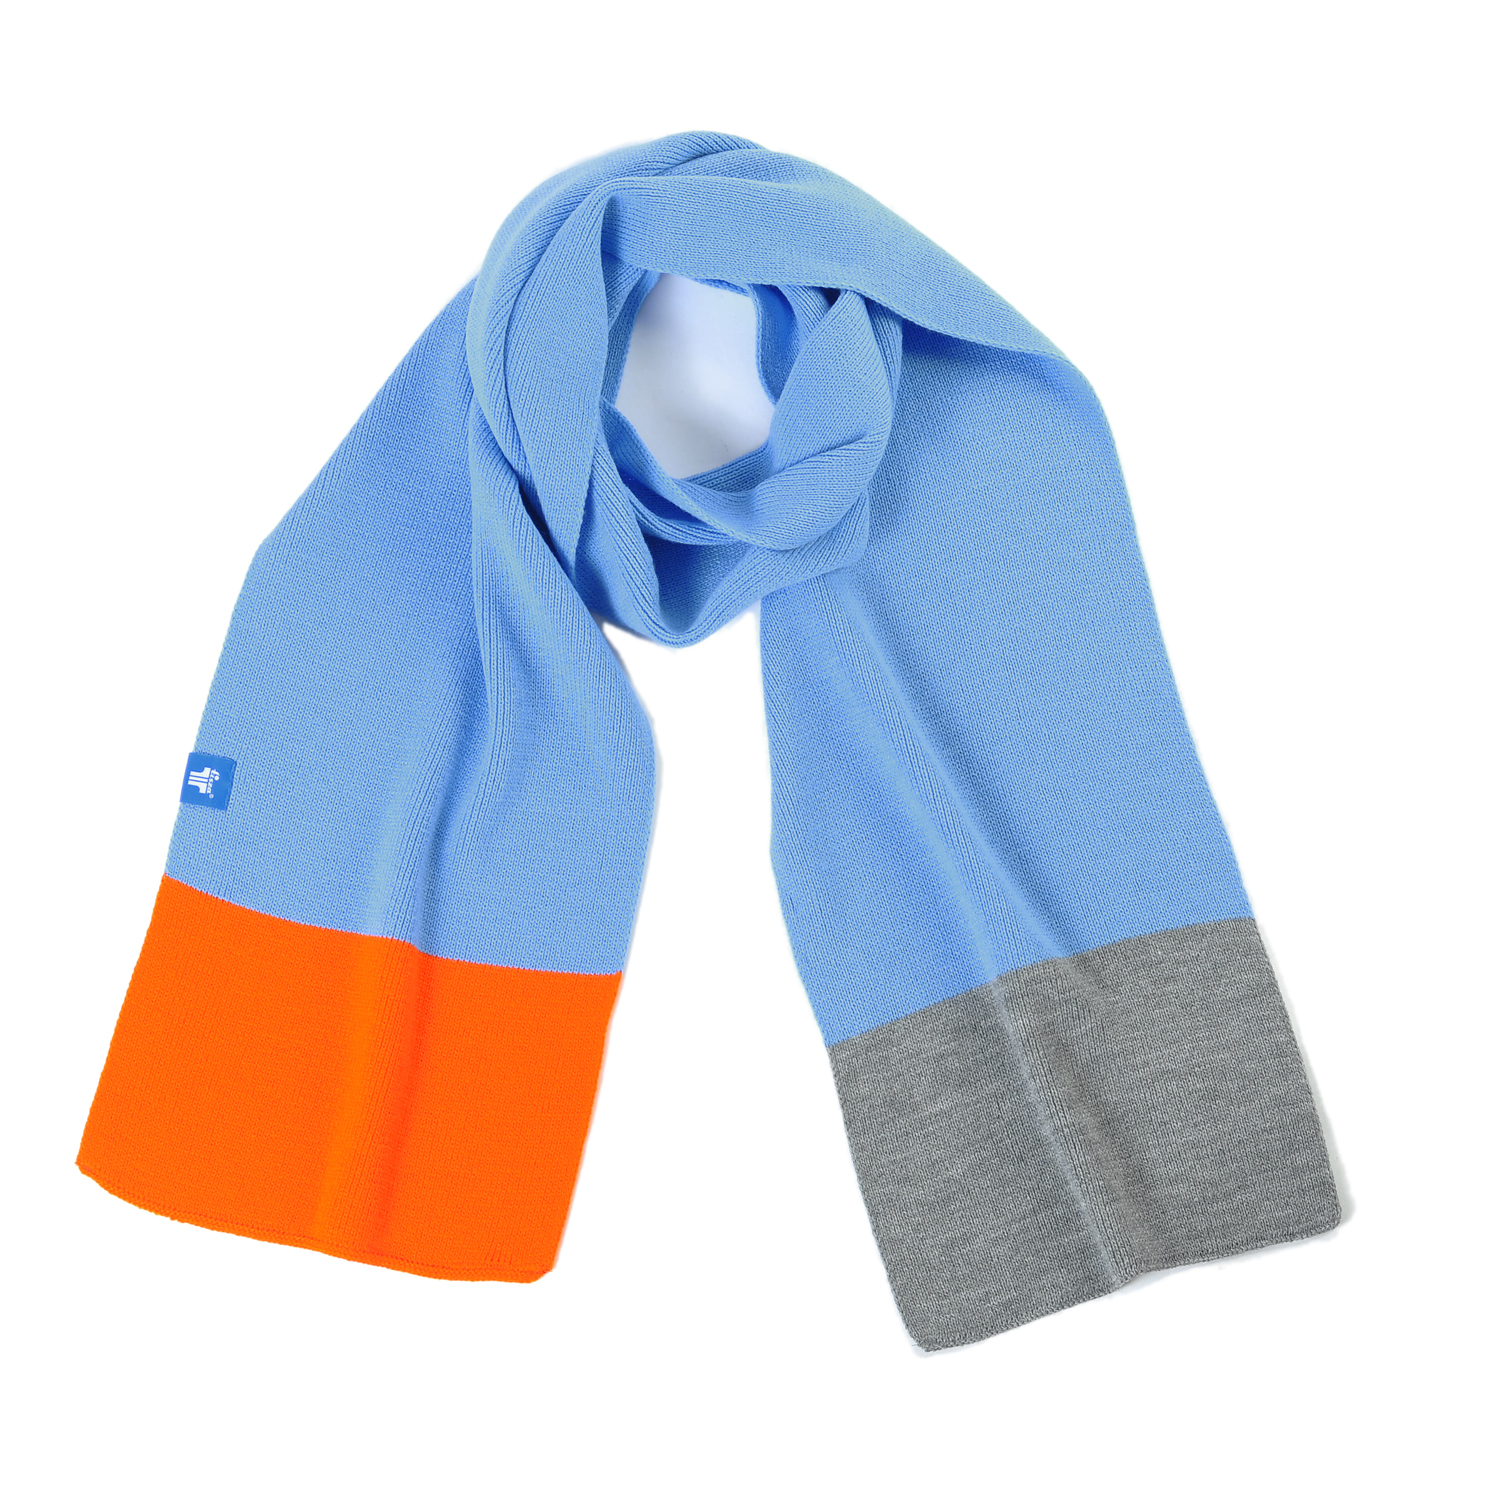 Tisza shoes - Scarf - Blue-orange